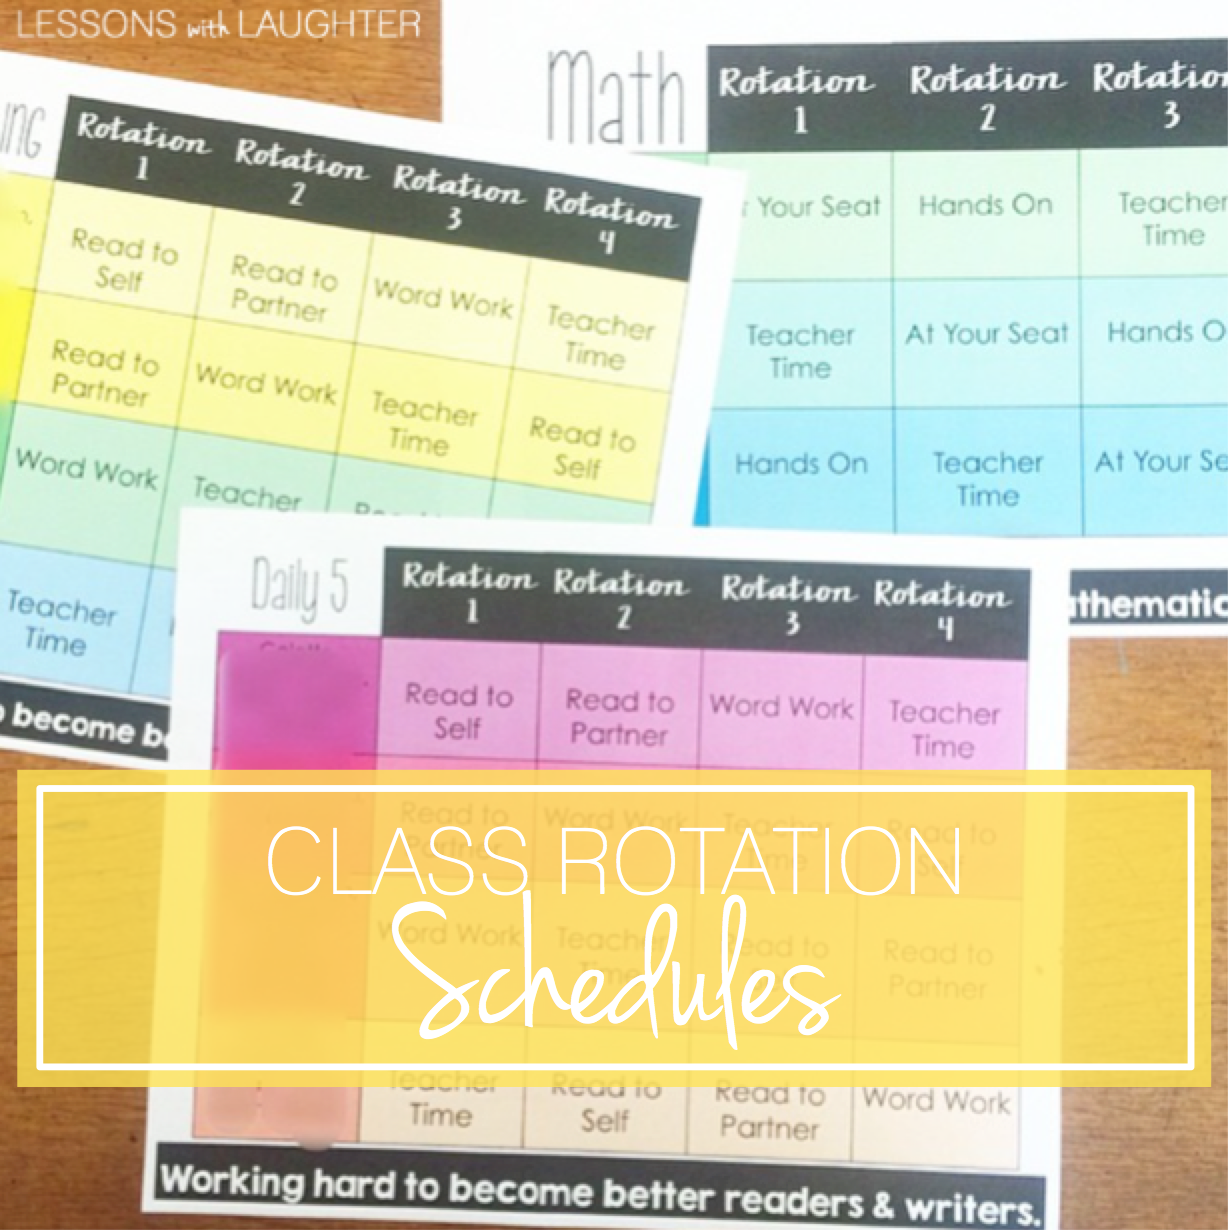 Class Rotation Schedules (Reading, Math, & Spelling) - Lessons With ...